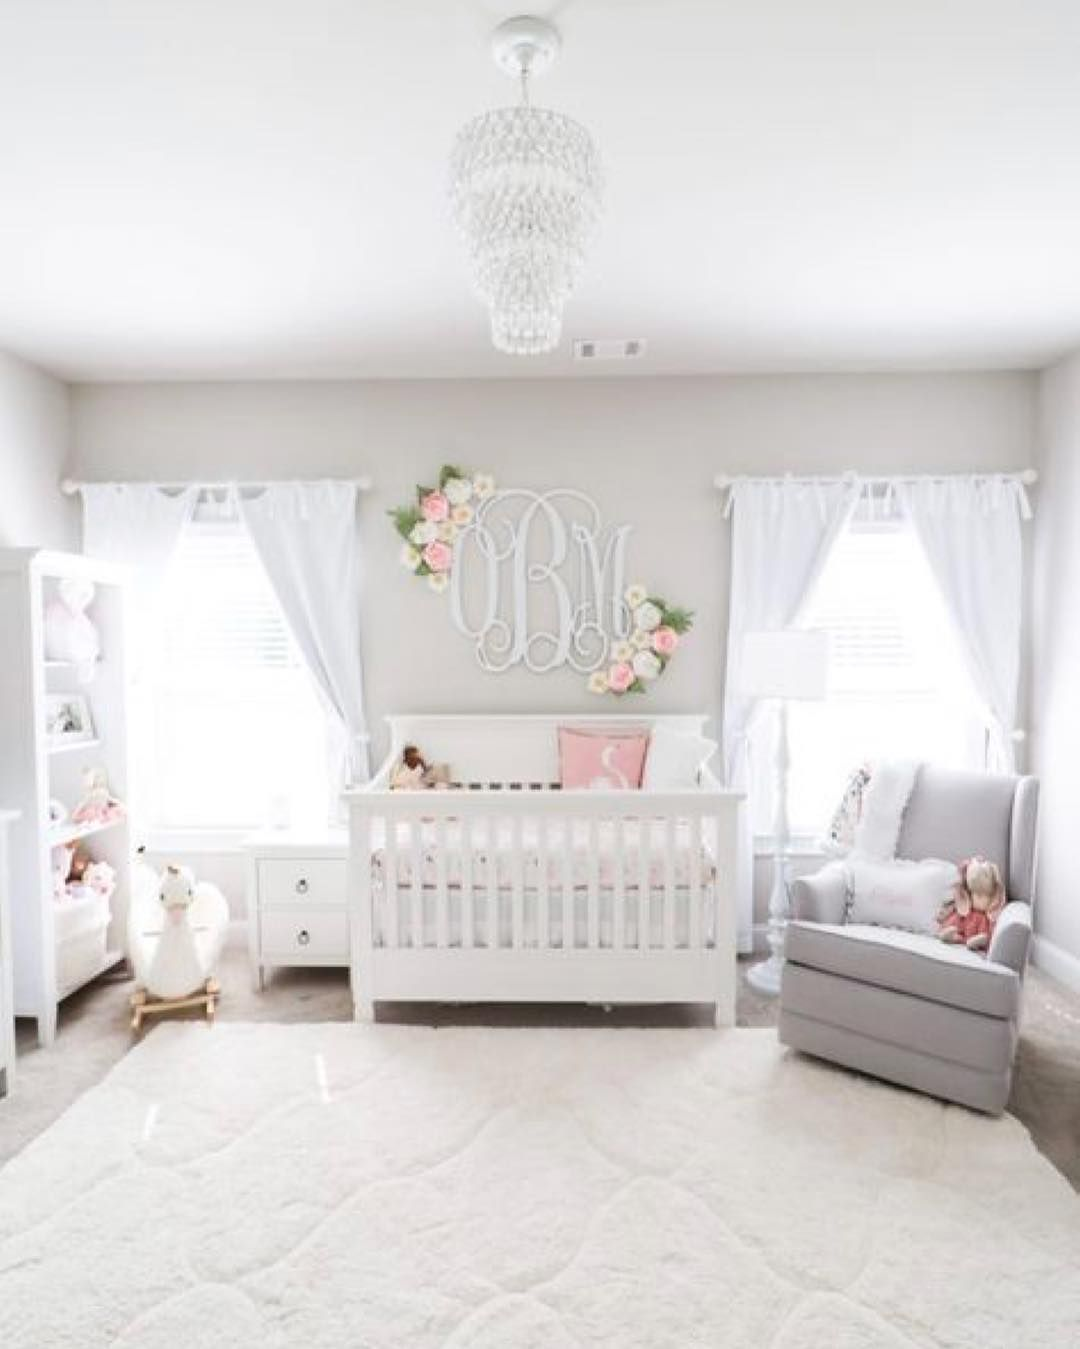 New Babyroom Decoration Ideas For New And Beauty Homes 2019